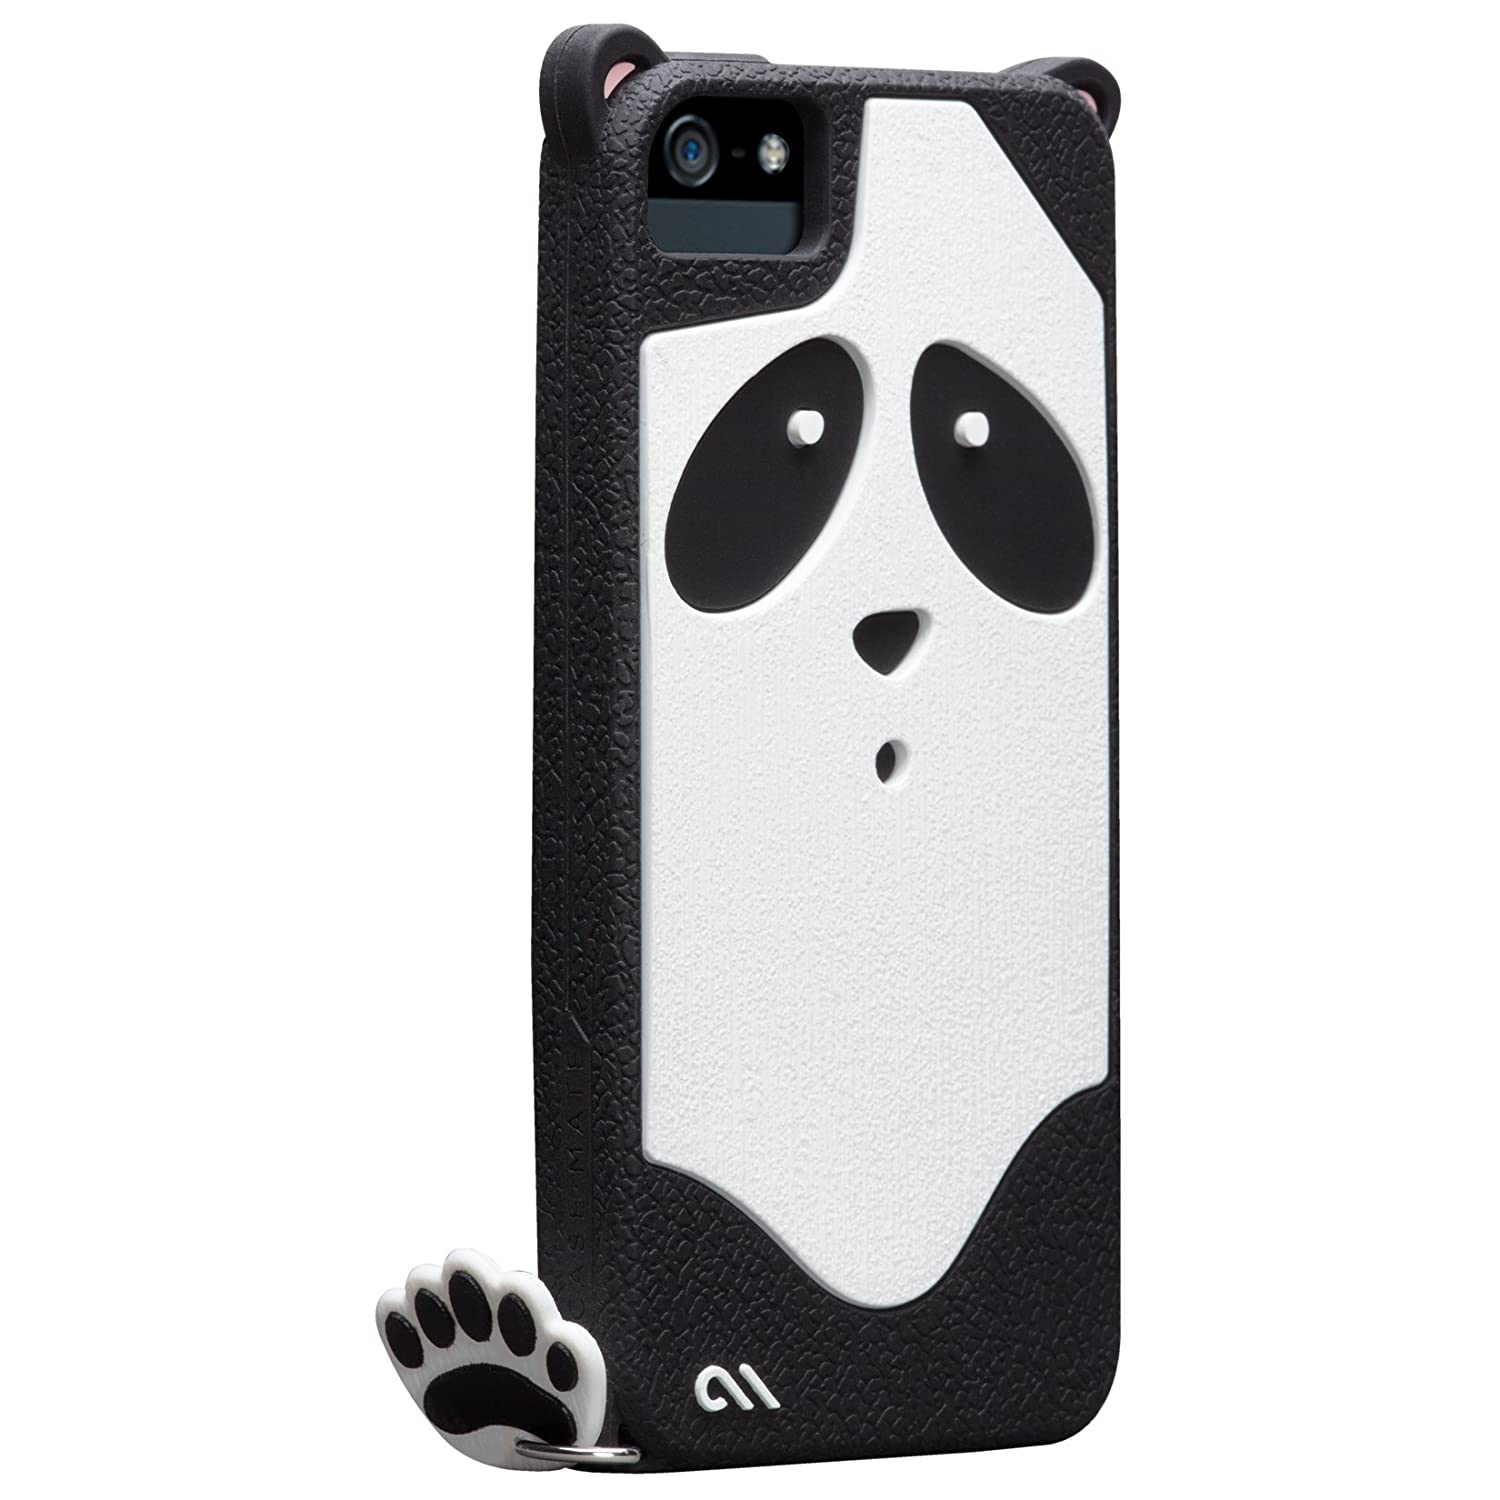 Medical research and corporate technology case mate iphone 4 case - Amazon Com Iphone 5 Creatures Xing Cases Olo By Case Mate Cell Phones Accessories